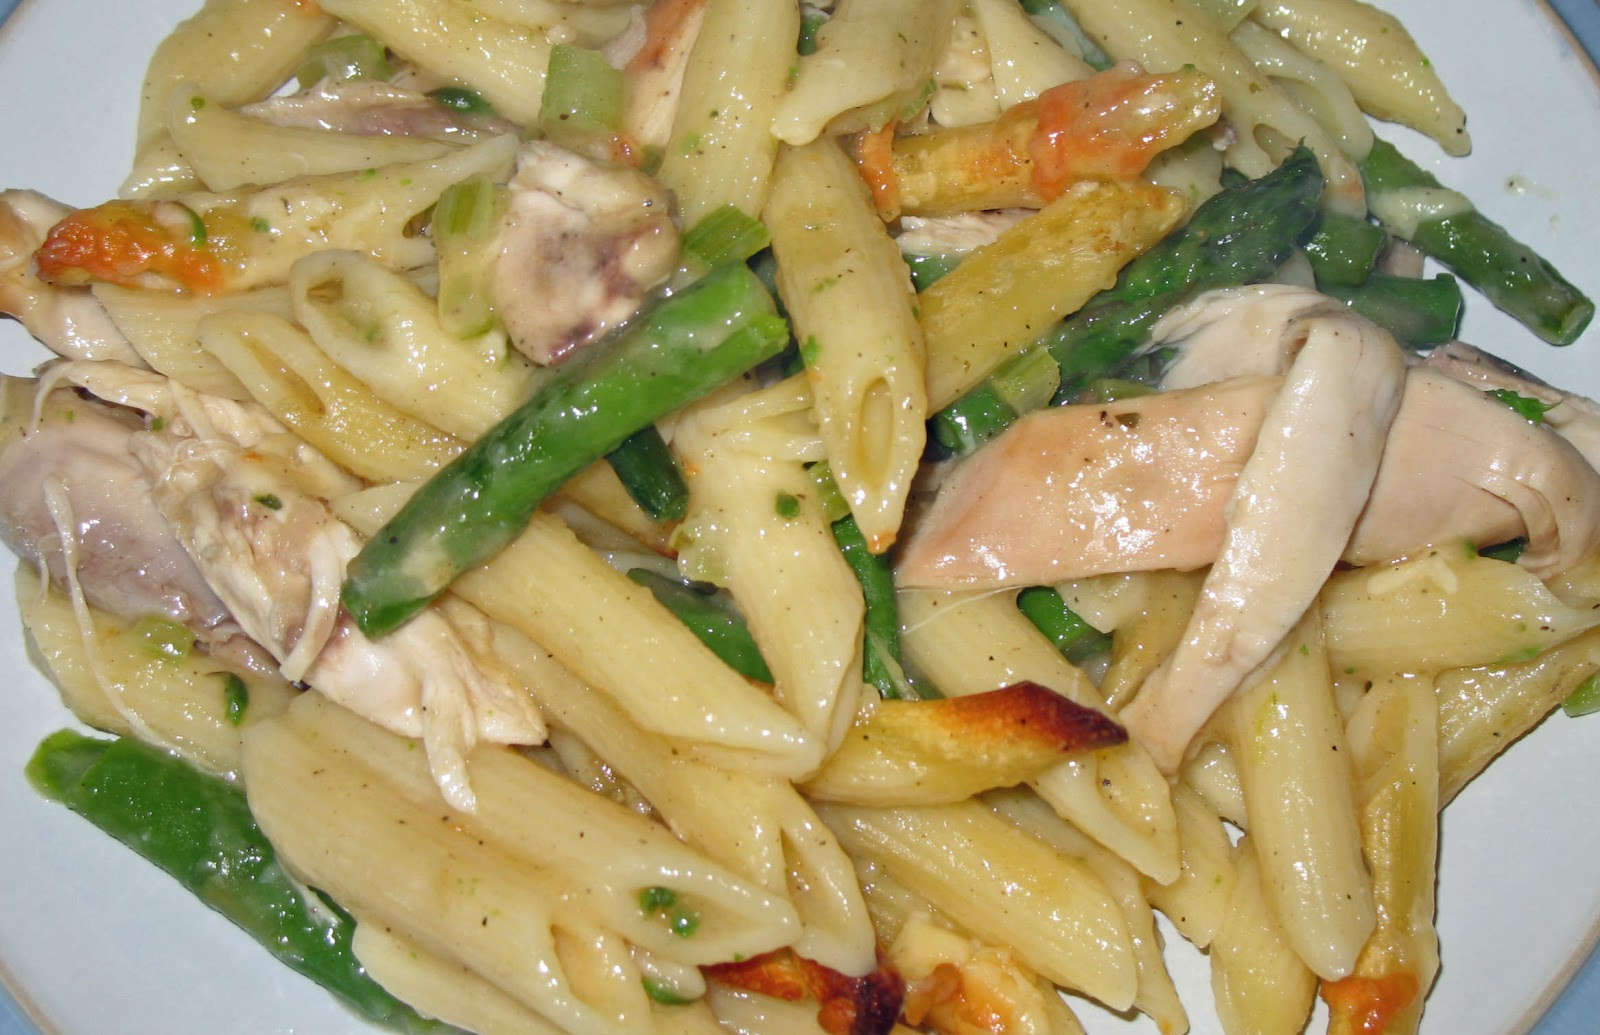 The Happy Housewife: Chicken & Asparagus Pasta Bake